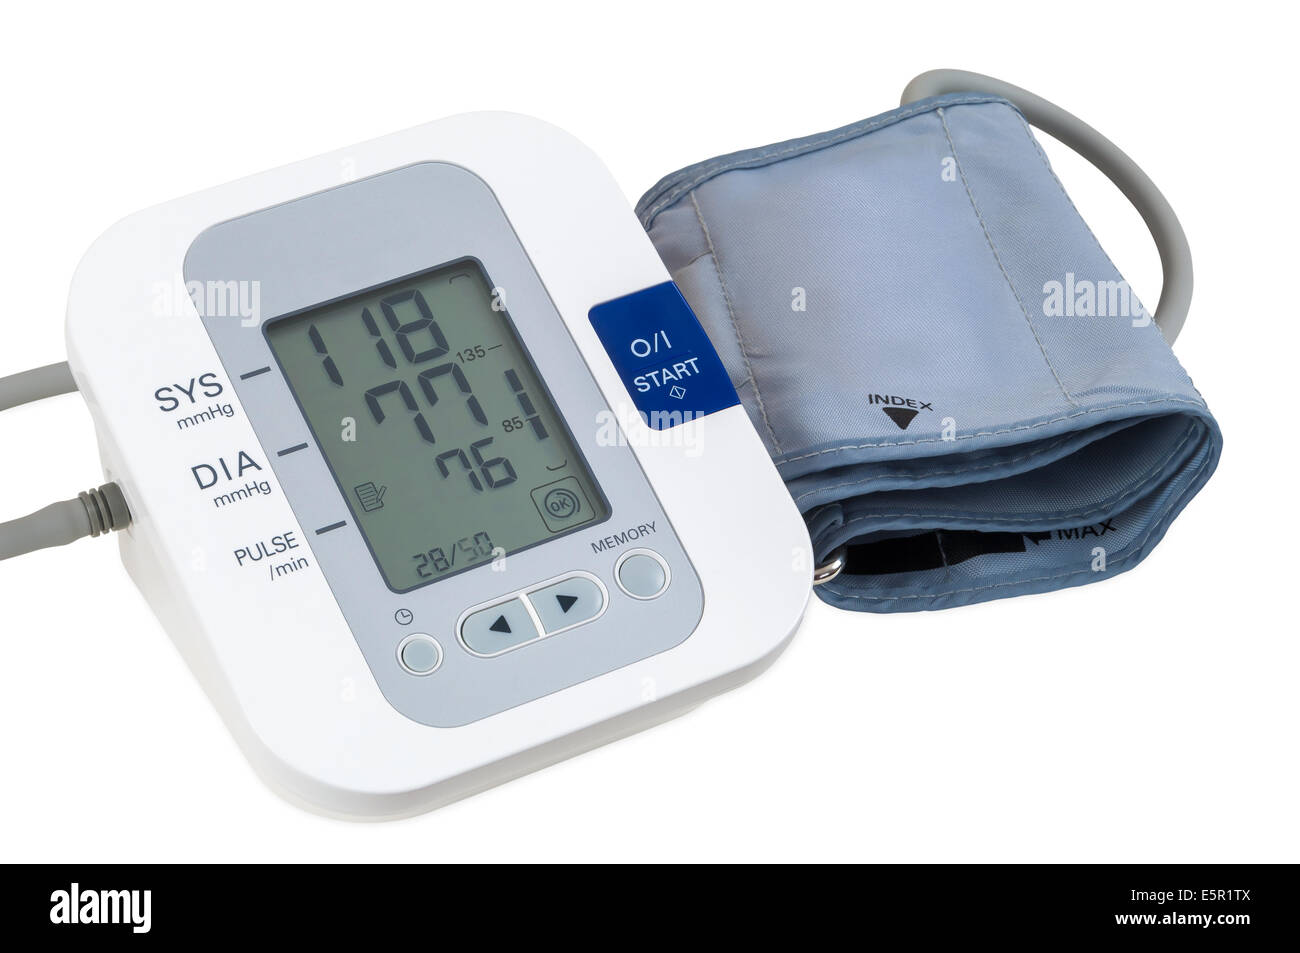 Digital blood pressure monitor isolated on white background with clipping path - Stock Image